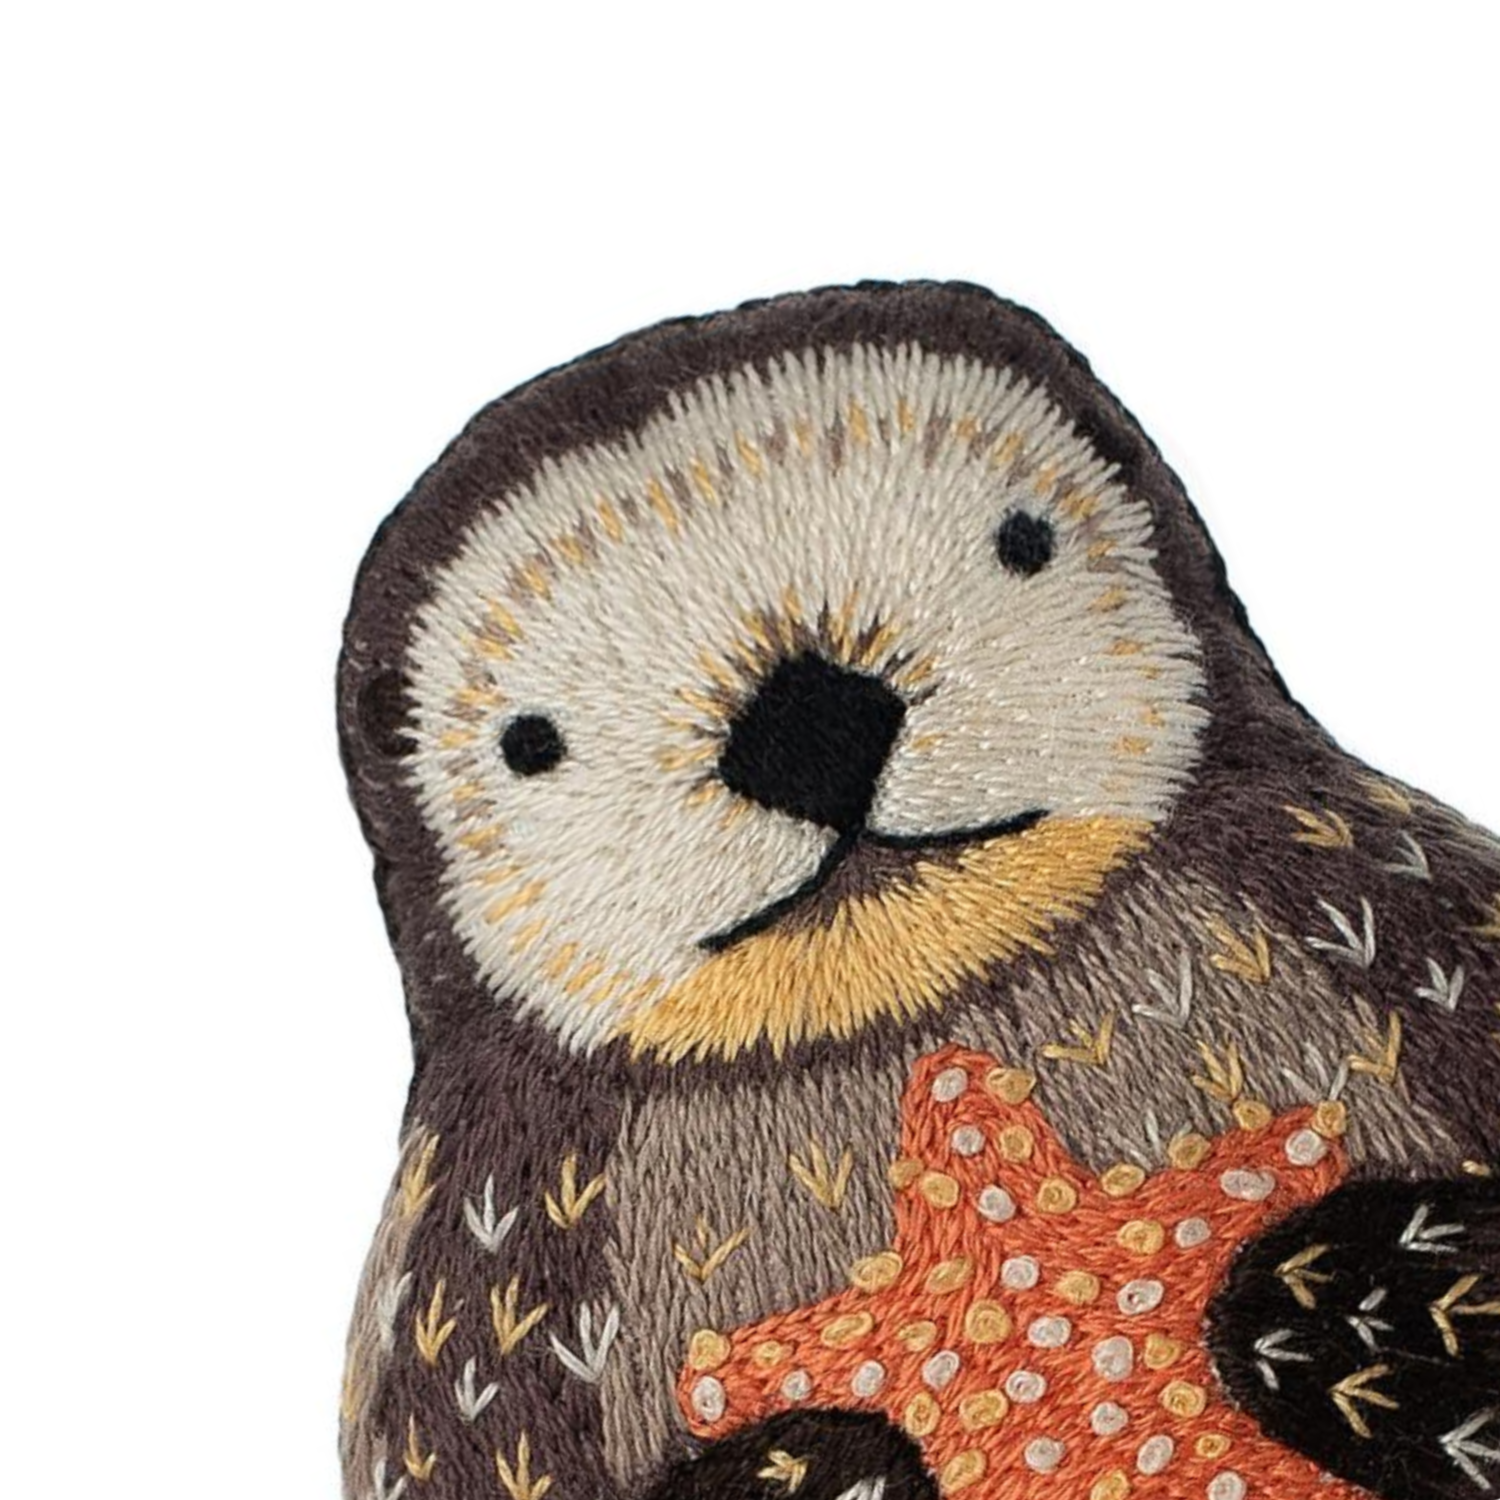 Otter Embroidery Kit by Kiriki Press Embroidery Kit - Snuggly Monkey